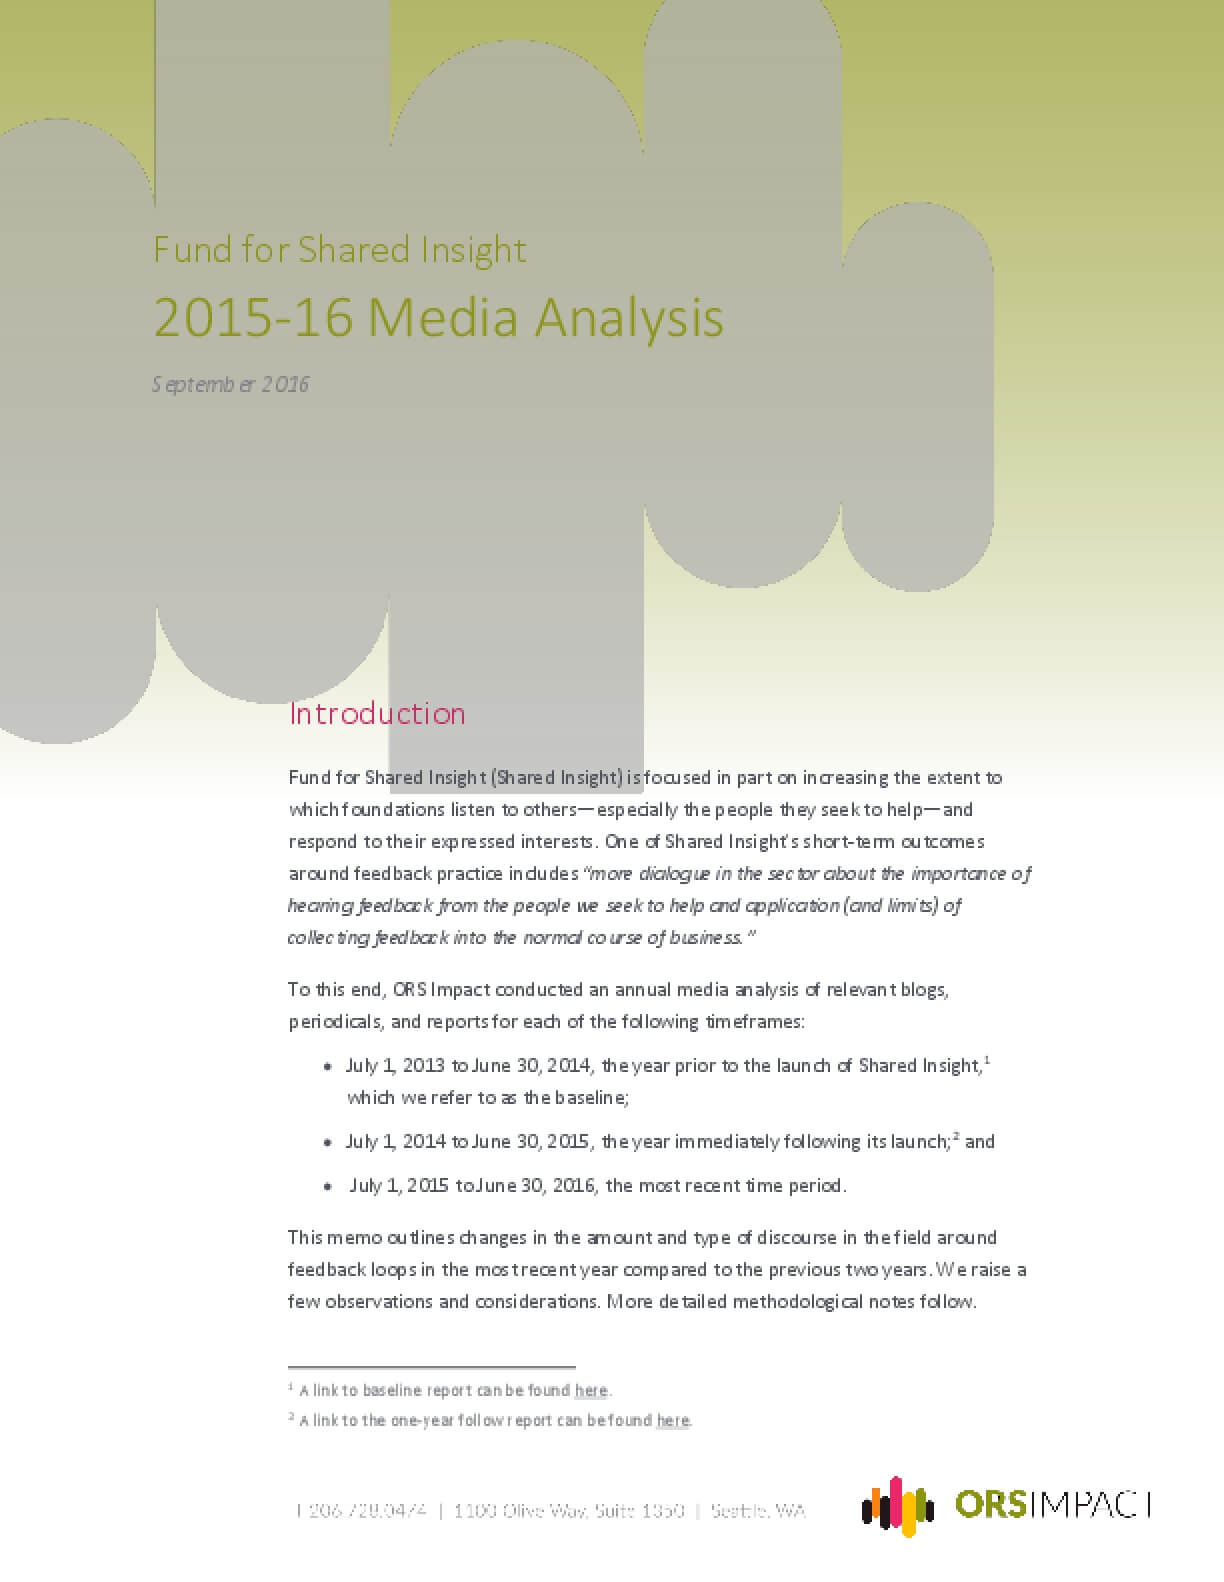 Fund for Shared Insight: 2015-2016 Media Analysis